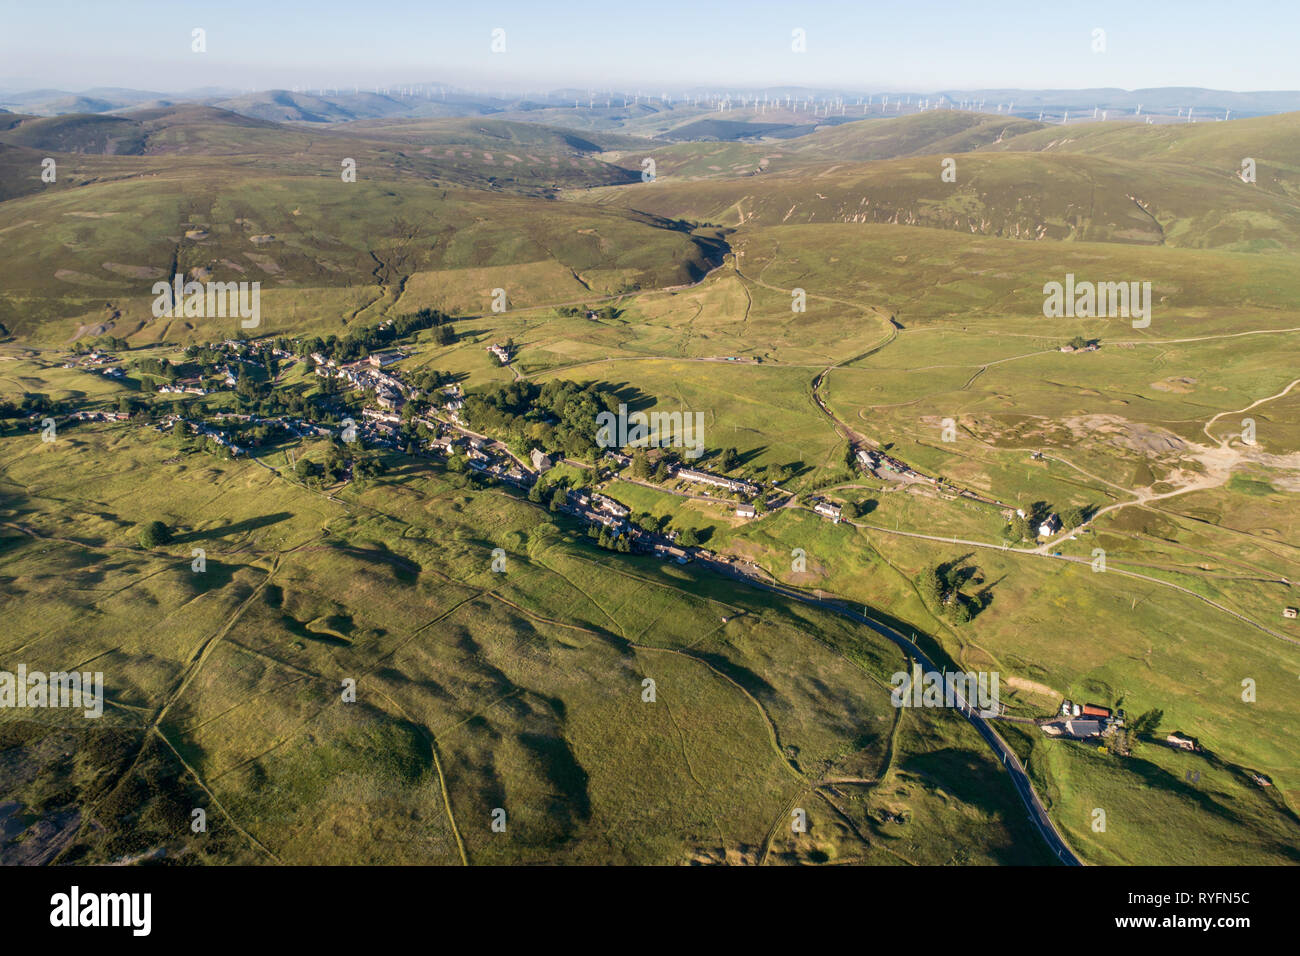 Aerial image of the village of Leadhills, arguably Scotland's highest village, showing historic mining sites and old shafts. - Stock Image